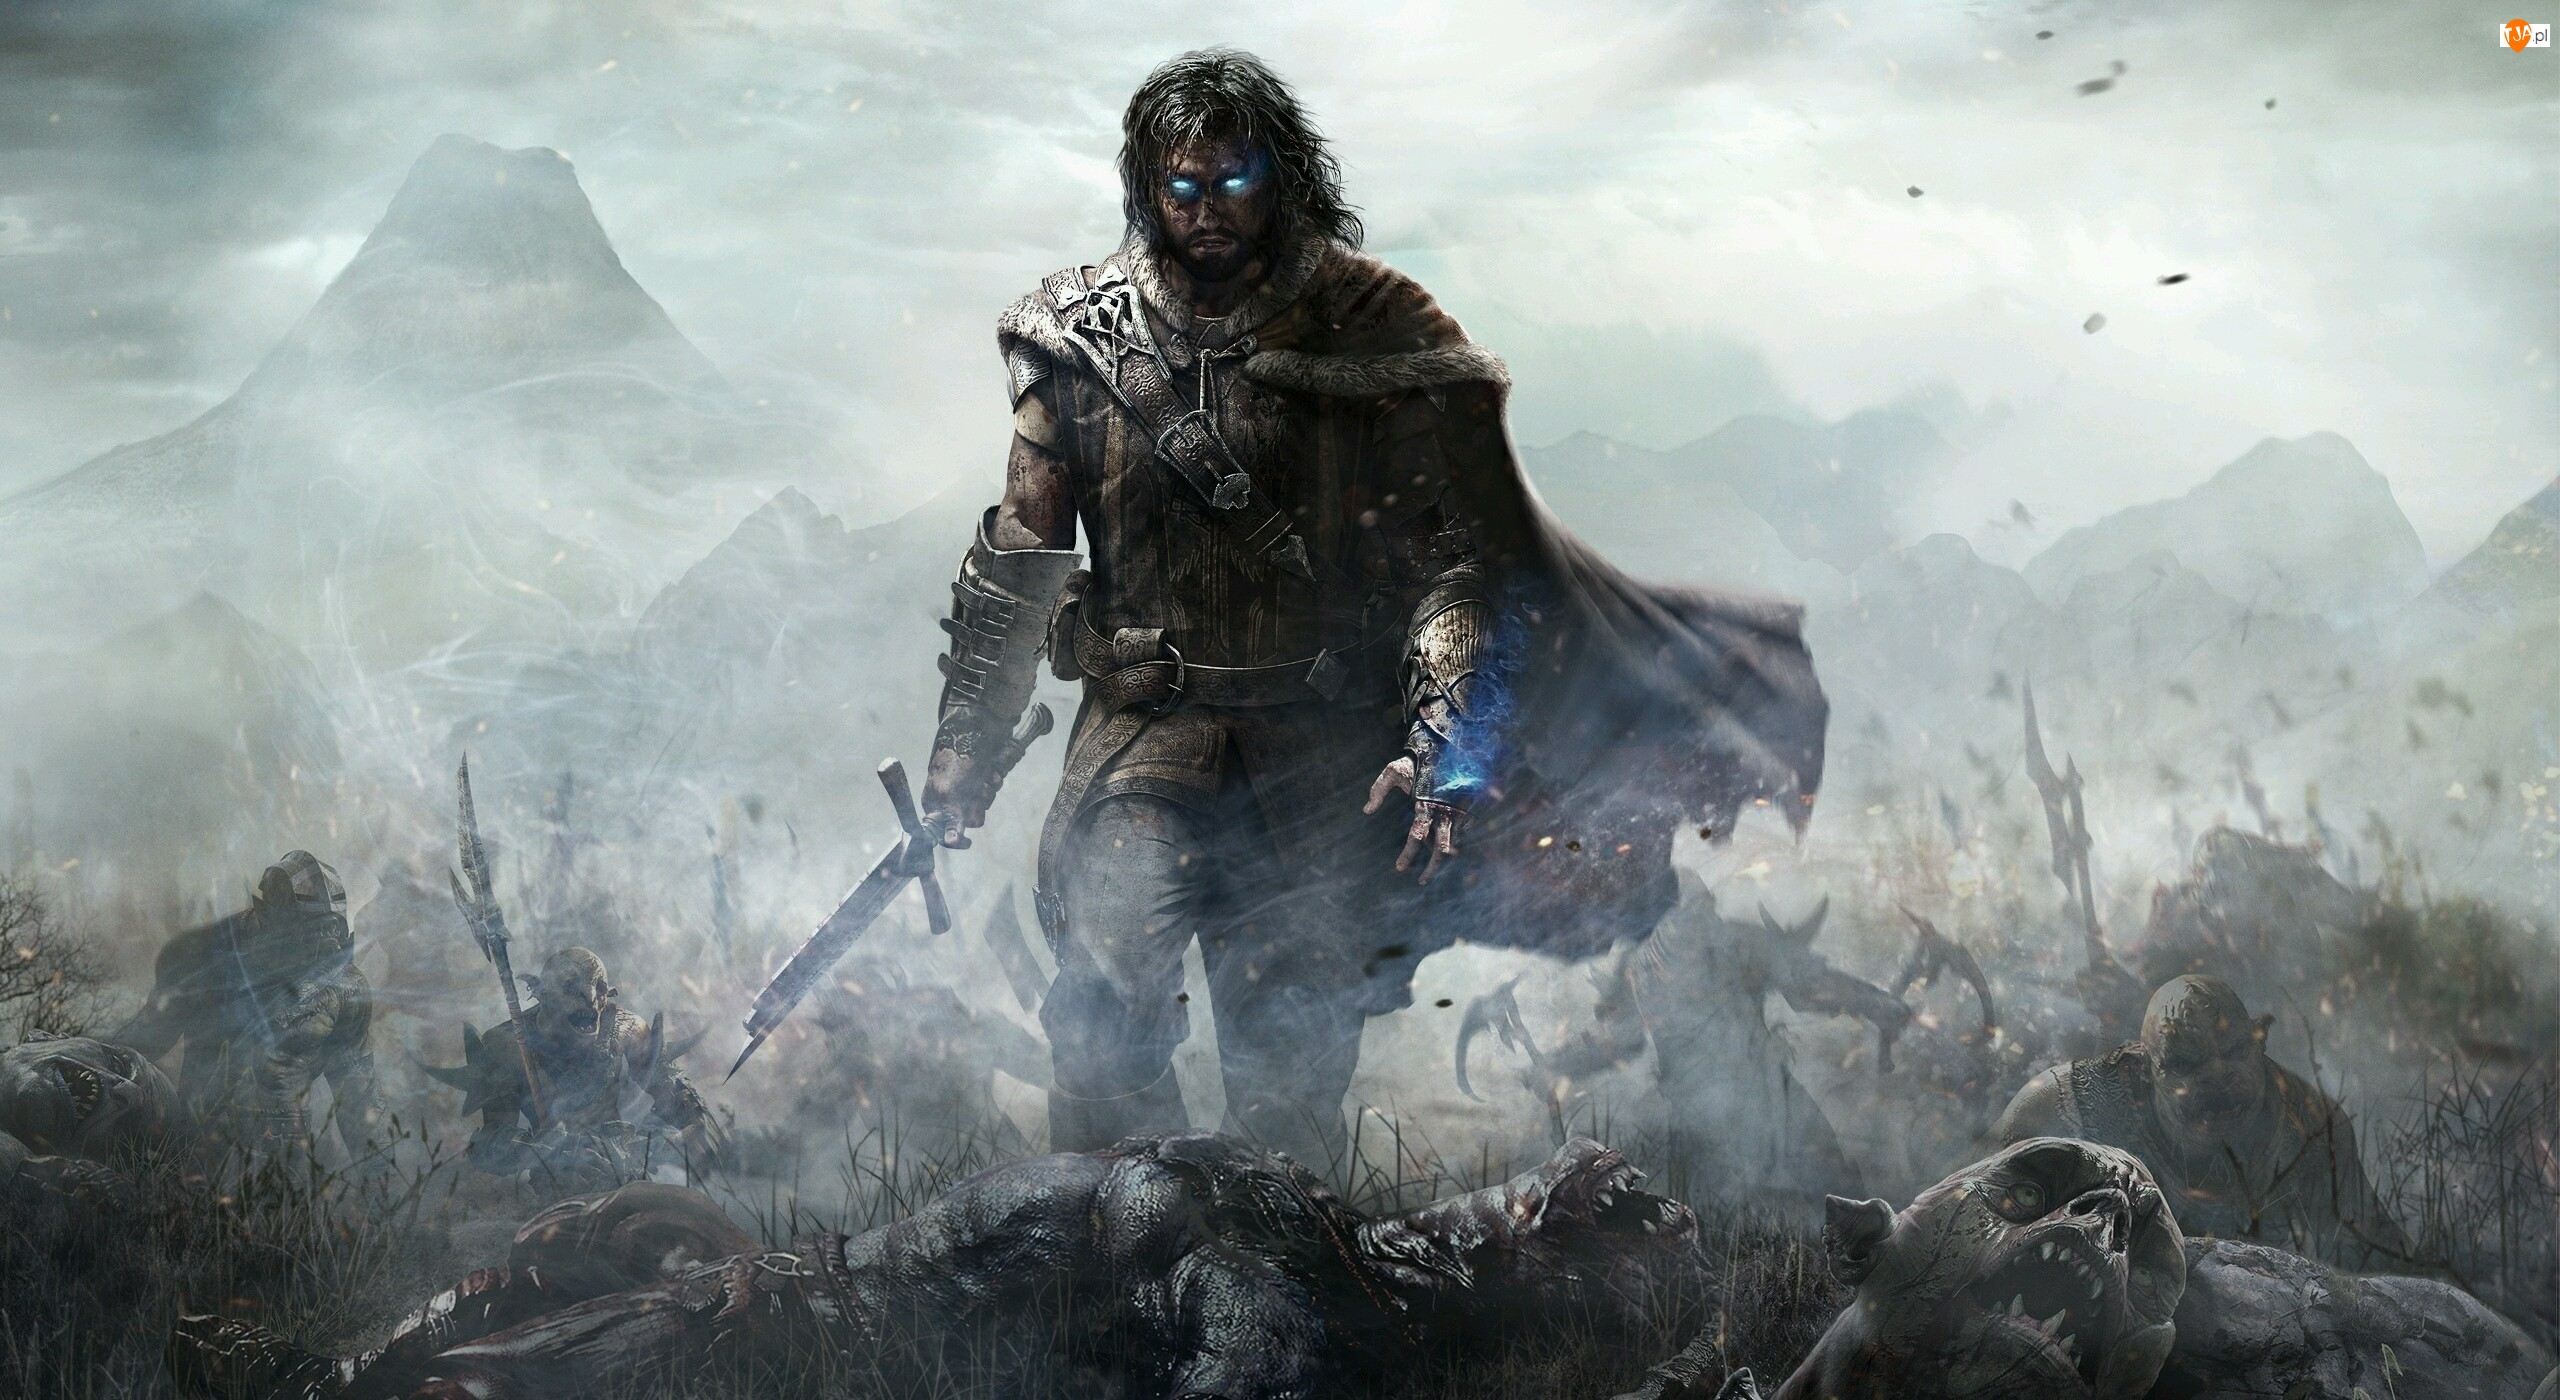 Cień mordoru, Złamany, Middle-earth, Miecz, Shadow of Mordor, Talion